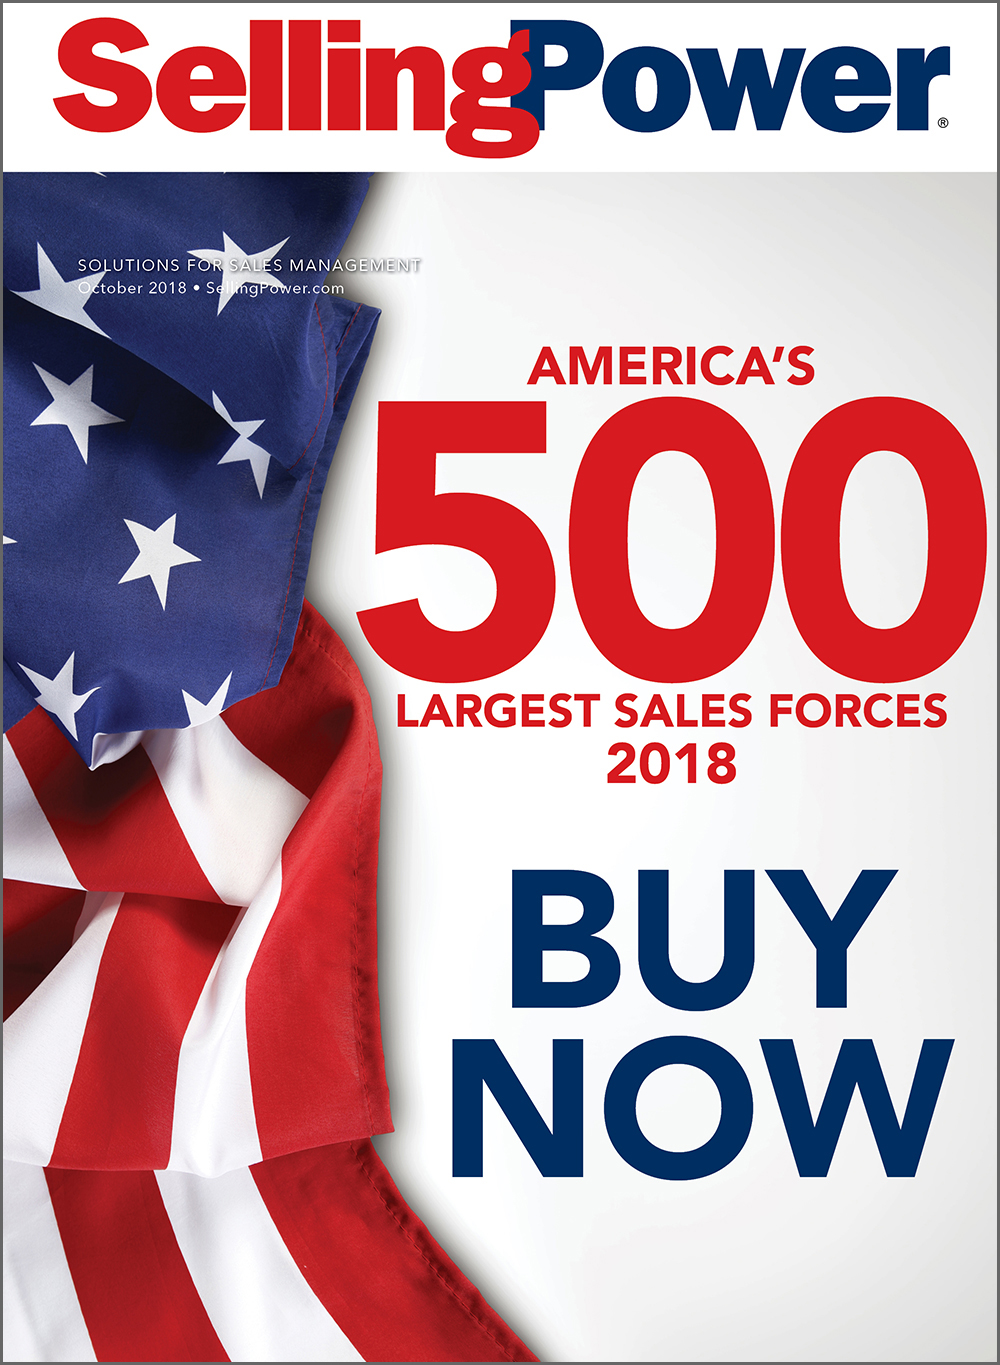 Selling Power 500 Largest Sales Forces (2018) - Selling Power